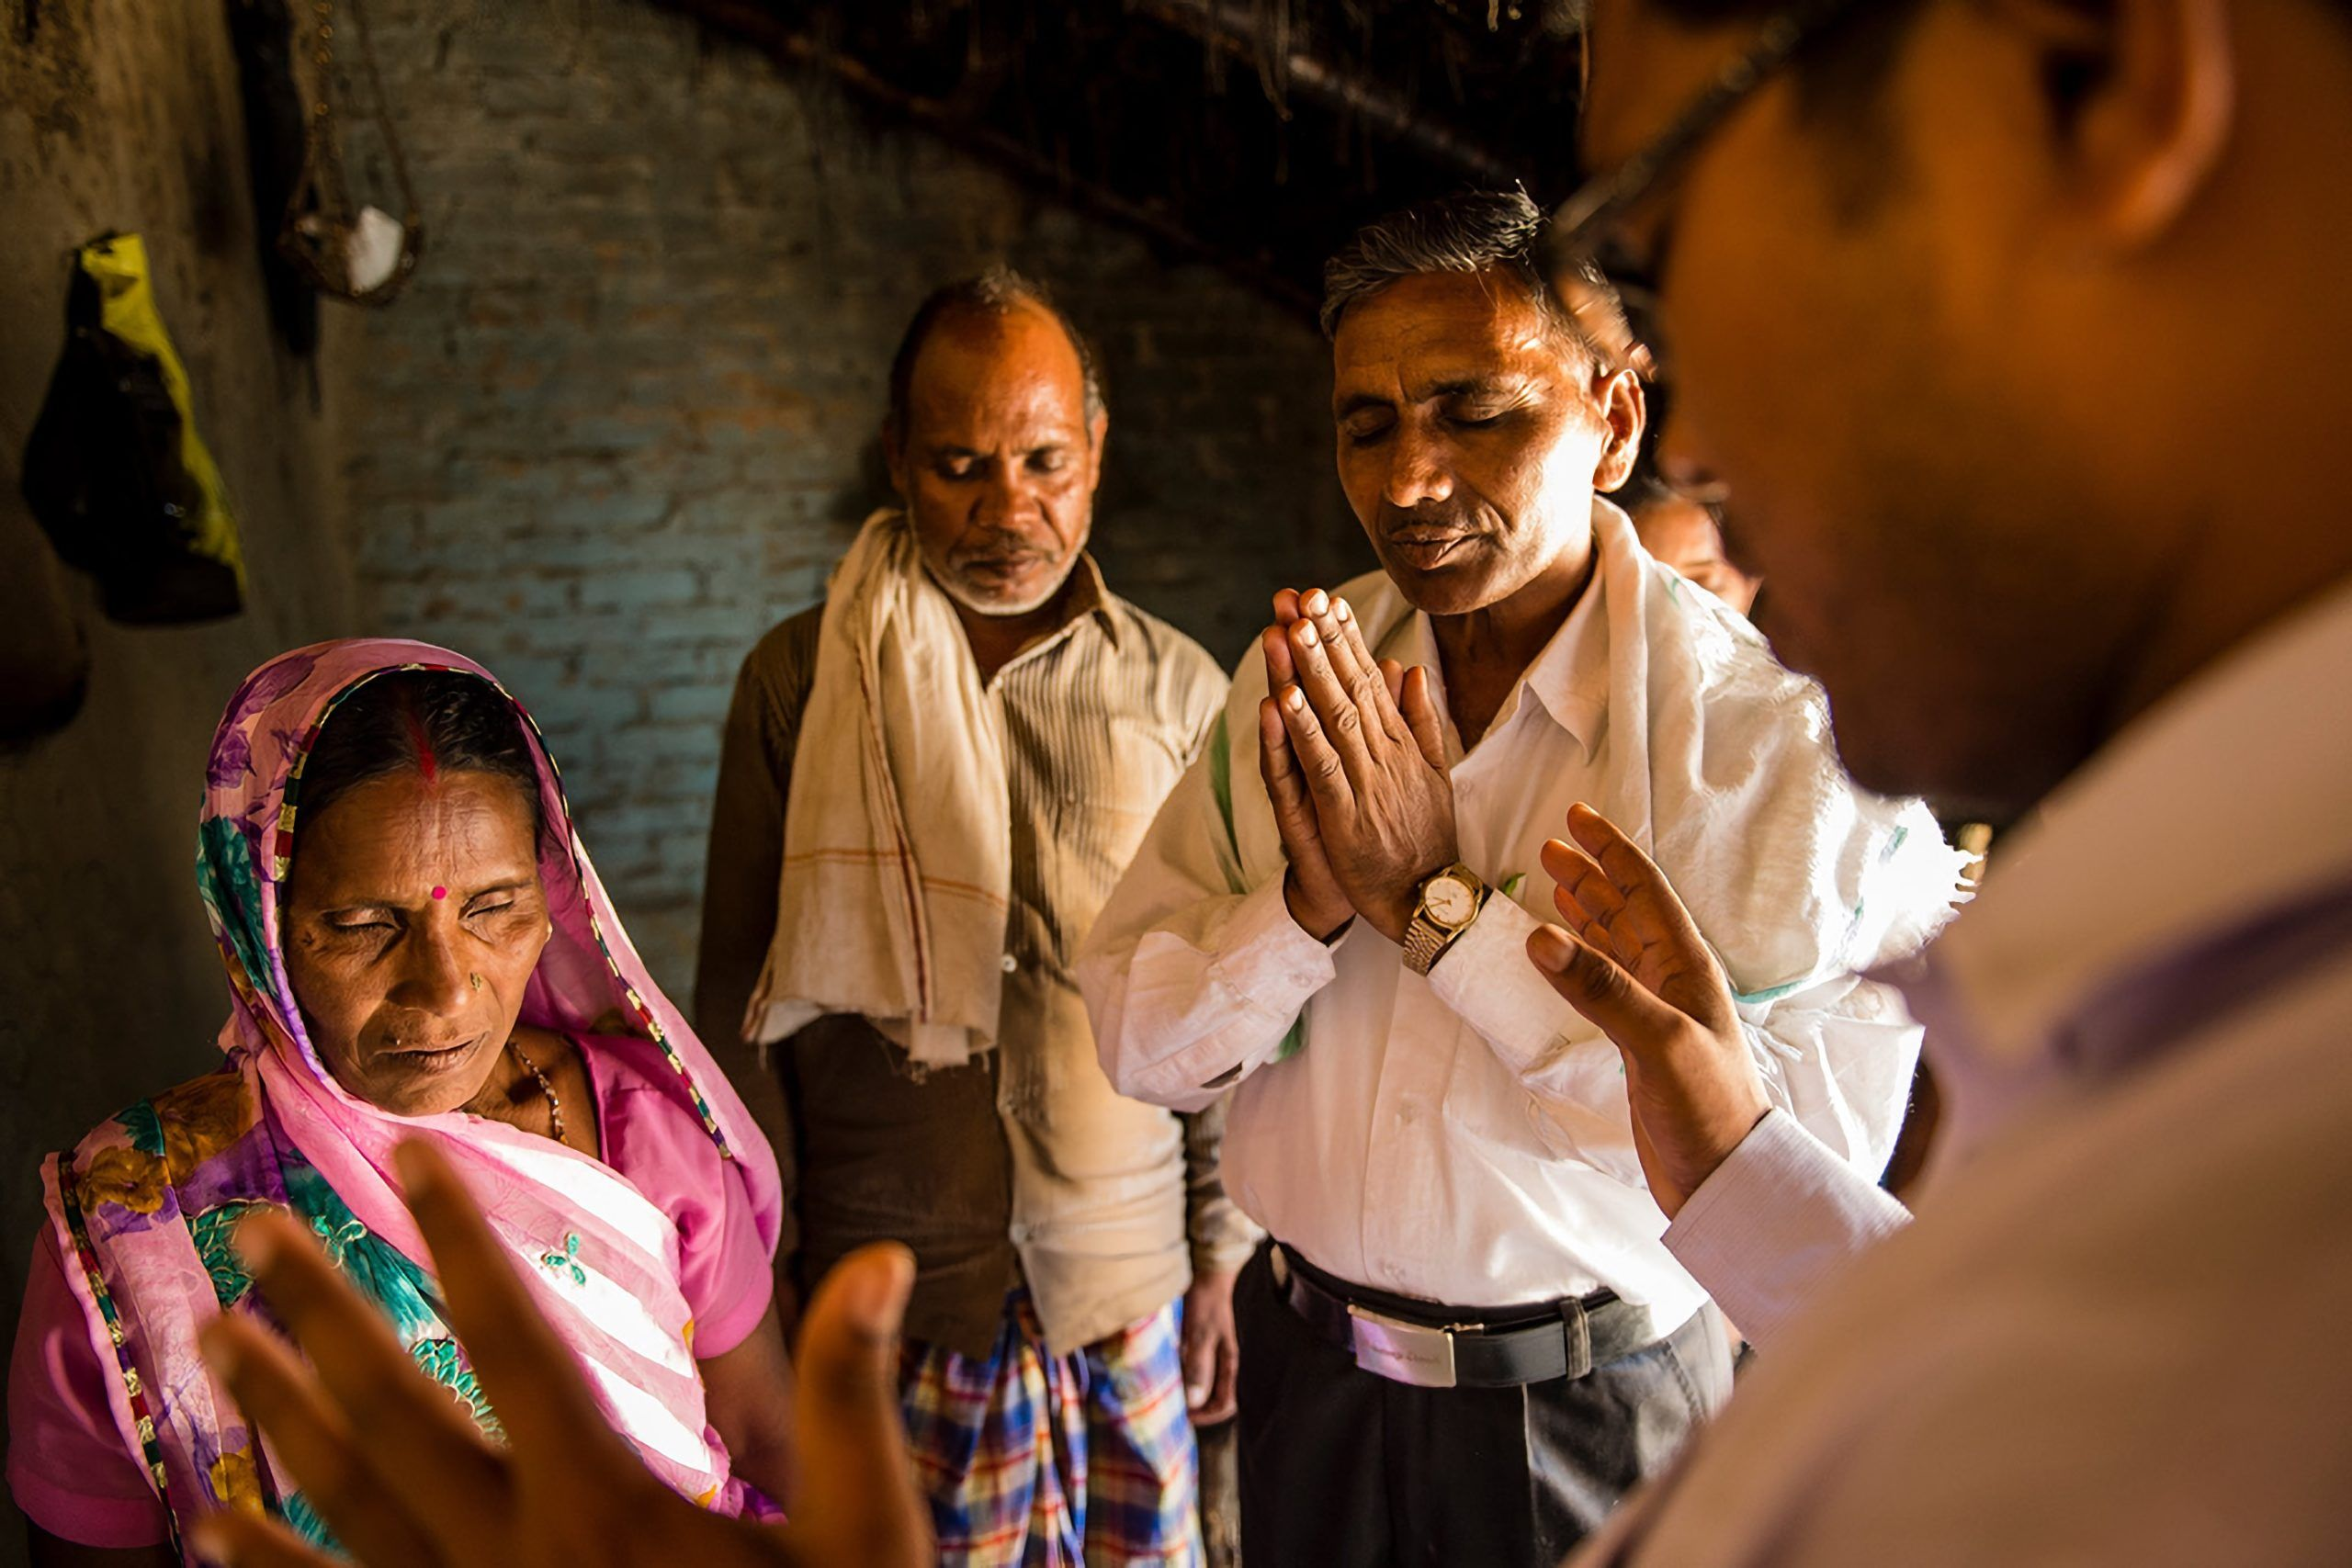 Gospel for Asia (GFA World) offers online 40-day Lent devotional to help Christians pray, fast for unity, end to pandemic and other crises